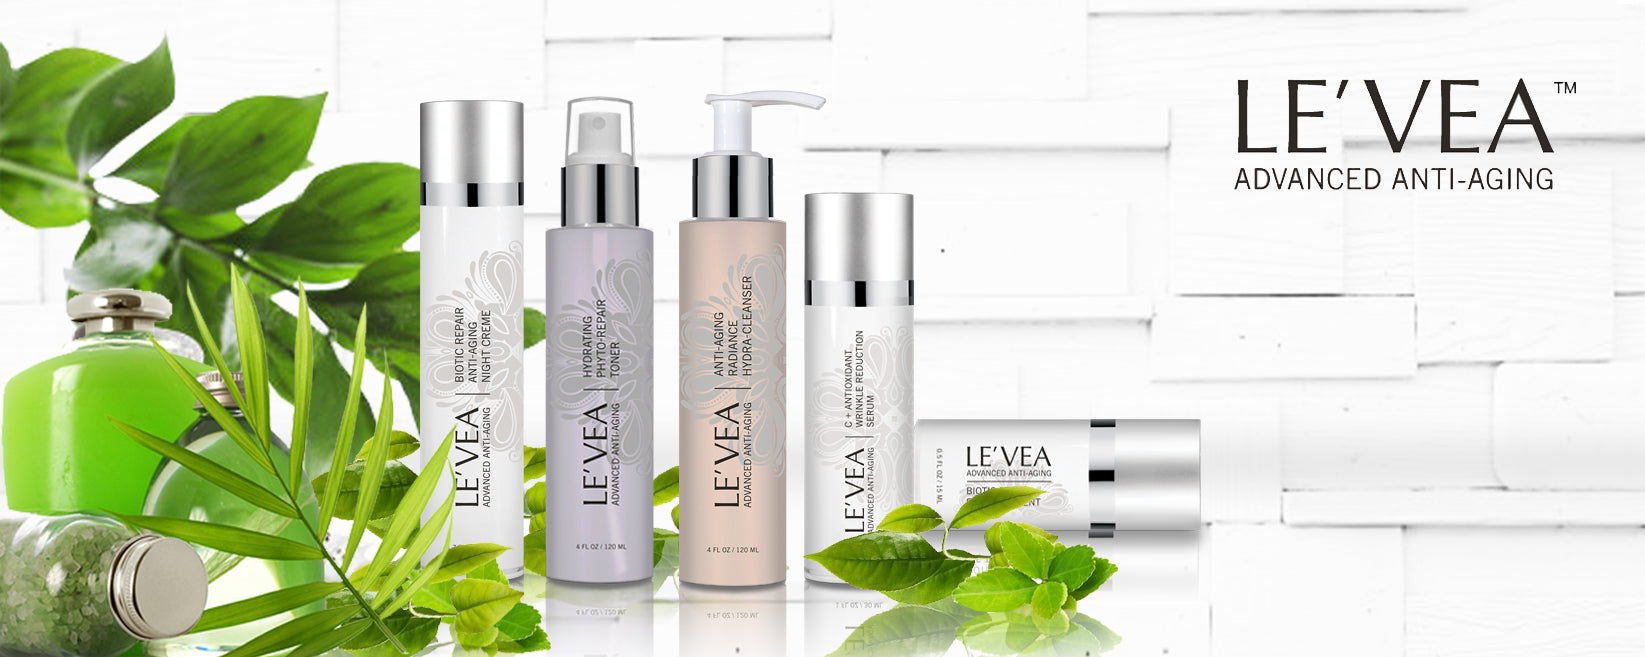 LE'VEA anti-aging skin care products for facial wrinkles